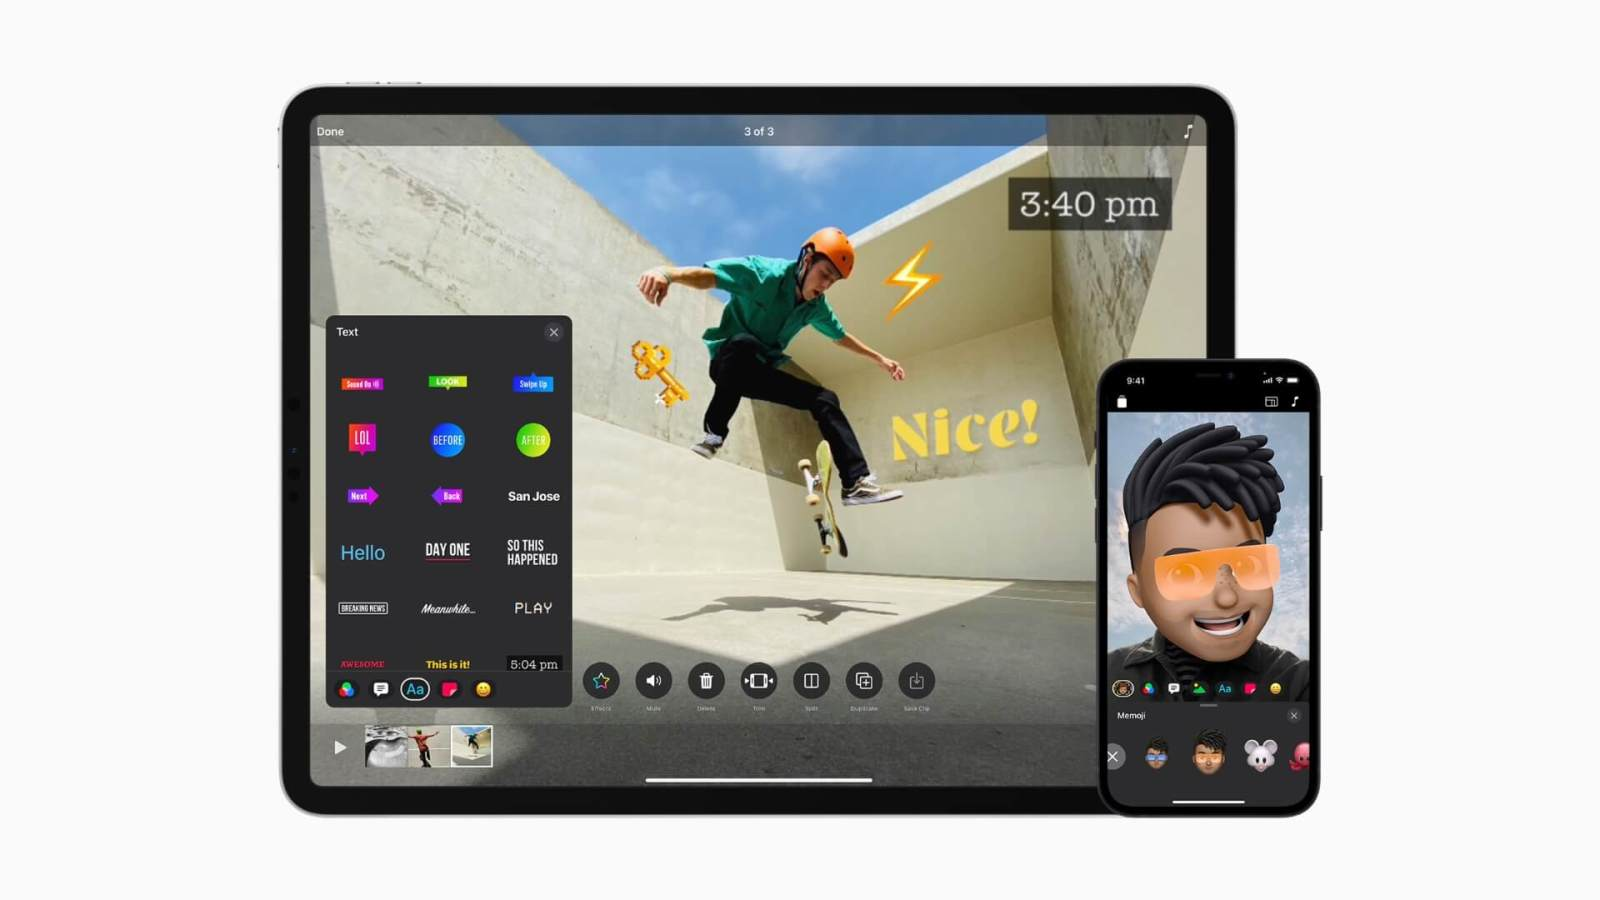 Apple Updates Clips App to Support for Vertical and Horizontal Video, HDR Recording with iPhone 12, and New Interface